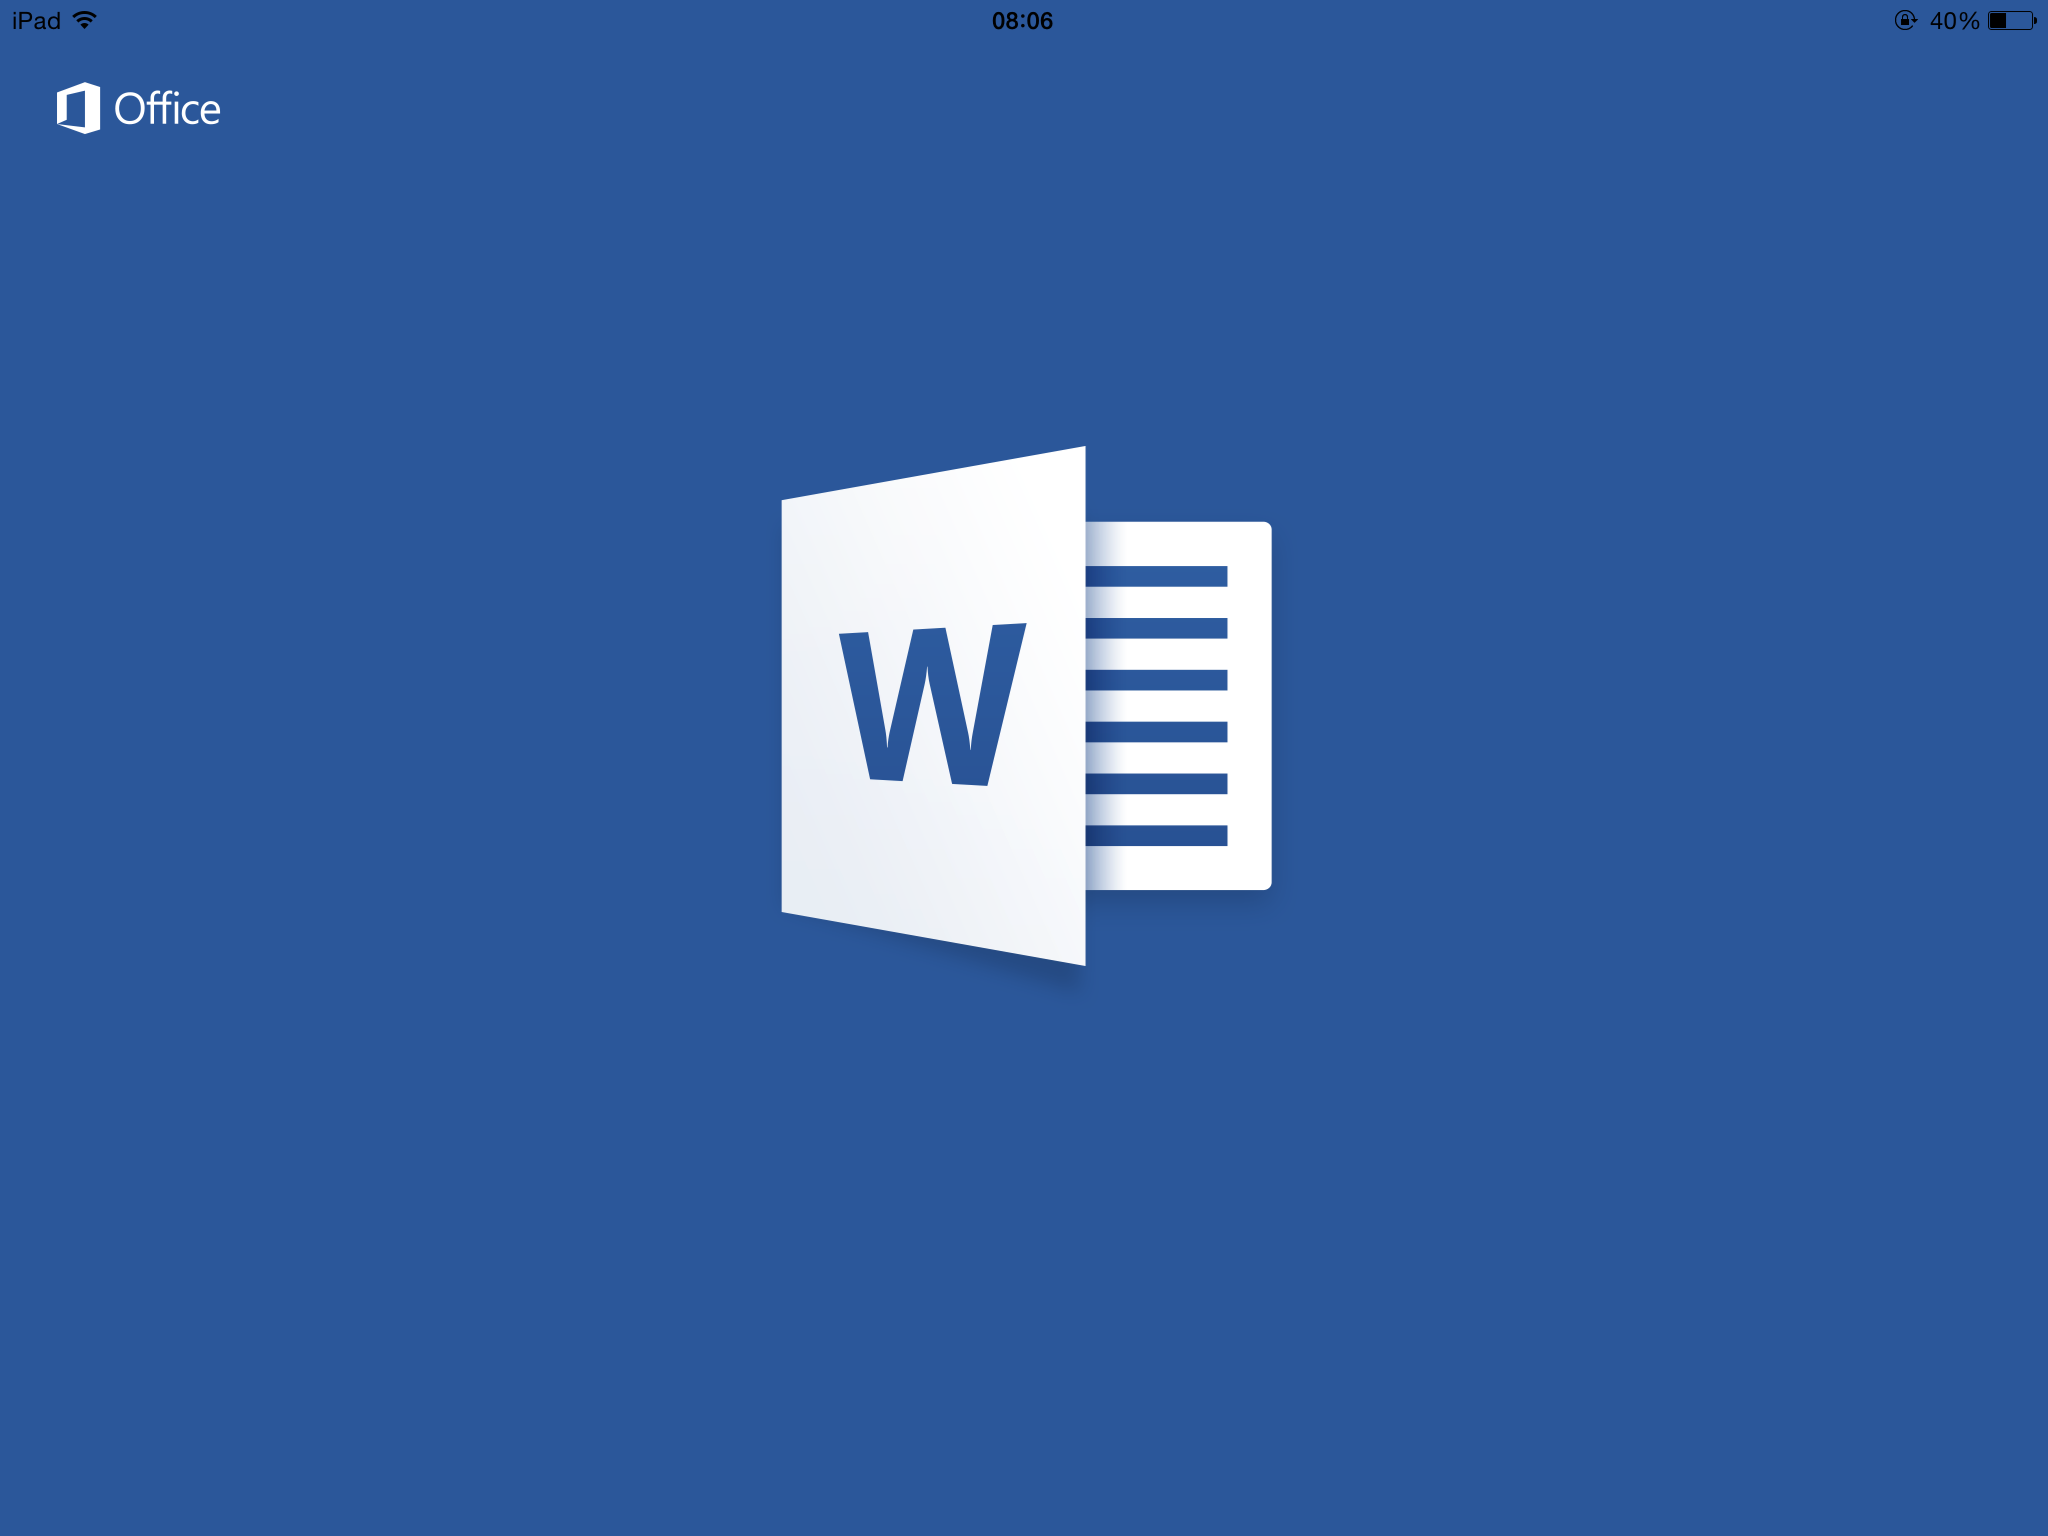 how to get microsoft office 2013 for free on ipad